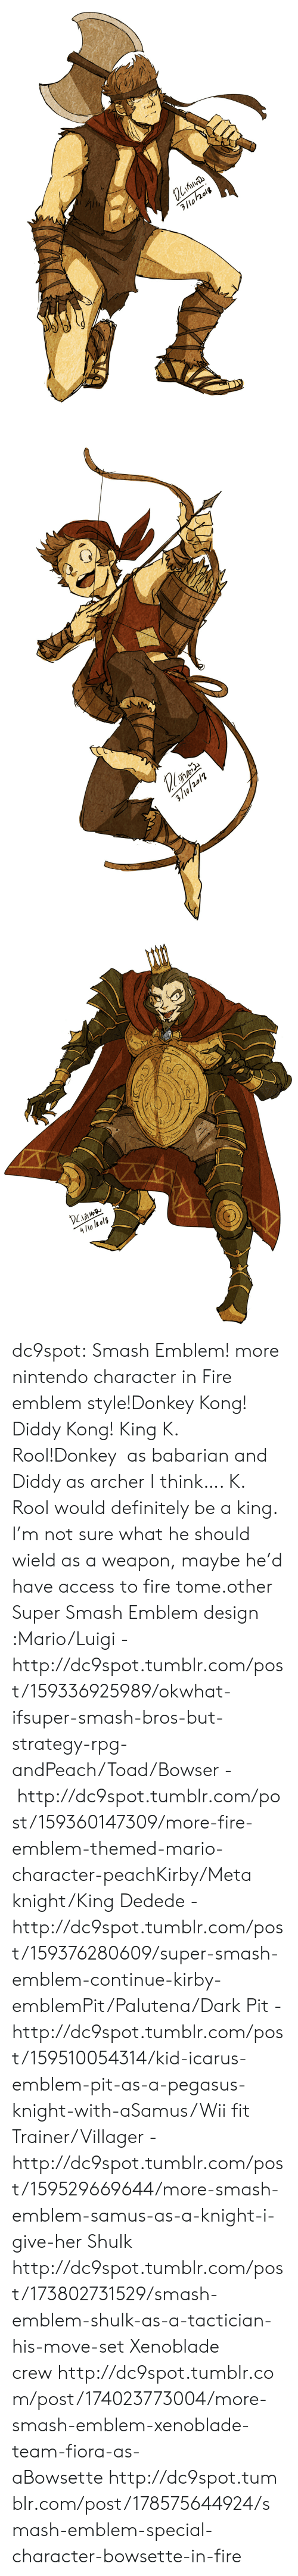 tome: 3/lo/2018   3/9/20/2   4/lo l2 olg dc9spot:  Smash Emblem! more nintendo character in Fire emblem style!Donkey Kong! Diddy Kong! King K. Rool!Donkey as babarian and Diddy as archer I think…. K. Rool would definitely be a king. I'm not sure what he should wield as a weapon, maybe he'd have access to fire tome.other Super Smash Emblem design :Mario/Luigi - http://dc9spot.tumblr.com/post/159336925989/okwhat-ifsuper-smash-bros-but-strategy-rpg-andPeach/Toad/Bowser - http://dc9spot.tumblr.com/post/159360147309/more-fire-emblem-themed-mario-character-peachKirby/Meta knight/King Dedede - http://dc9spot.tumblr.com/post/159376280609/super-smash-emblem-continue-kirby-emblemPit/Palutena/Dark Pit - http://dc9spot.tumblr.com/post/159510054314/kid-icarus-emblem-pit-as-a-pegasus-knight-with-aSamus/Wii fit Trainer/Villager - http://dc9spot.tumblr.com/post/159529669644/more-smash-emblem-samus-as-a-knight-i-give-her  Shulk http://dc9spot.tumblr.com/post/173802731529/smash-emblem-shulk-as-a-tactician-his-move-set  Xenoblade crewhttp://dc9spot.tumblr.com/post/174023773004/more-smash-emblem-xenoblade-team-fiora-as-aBowsettehttp://dc9spot.tumblr.com/post/178575644924/smash-emblem-special-character-bowsette-in-fire